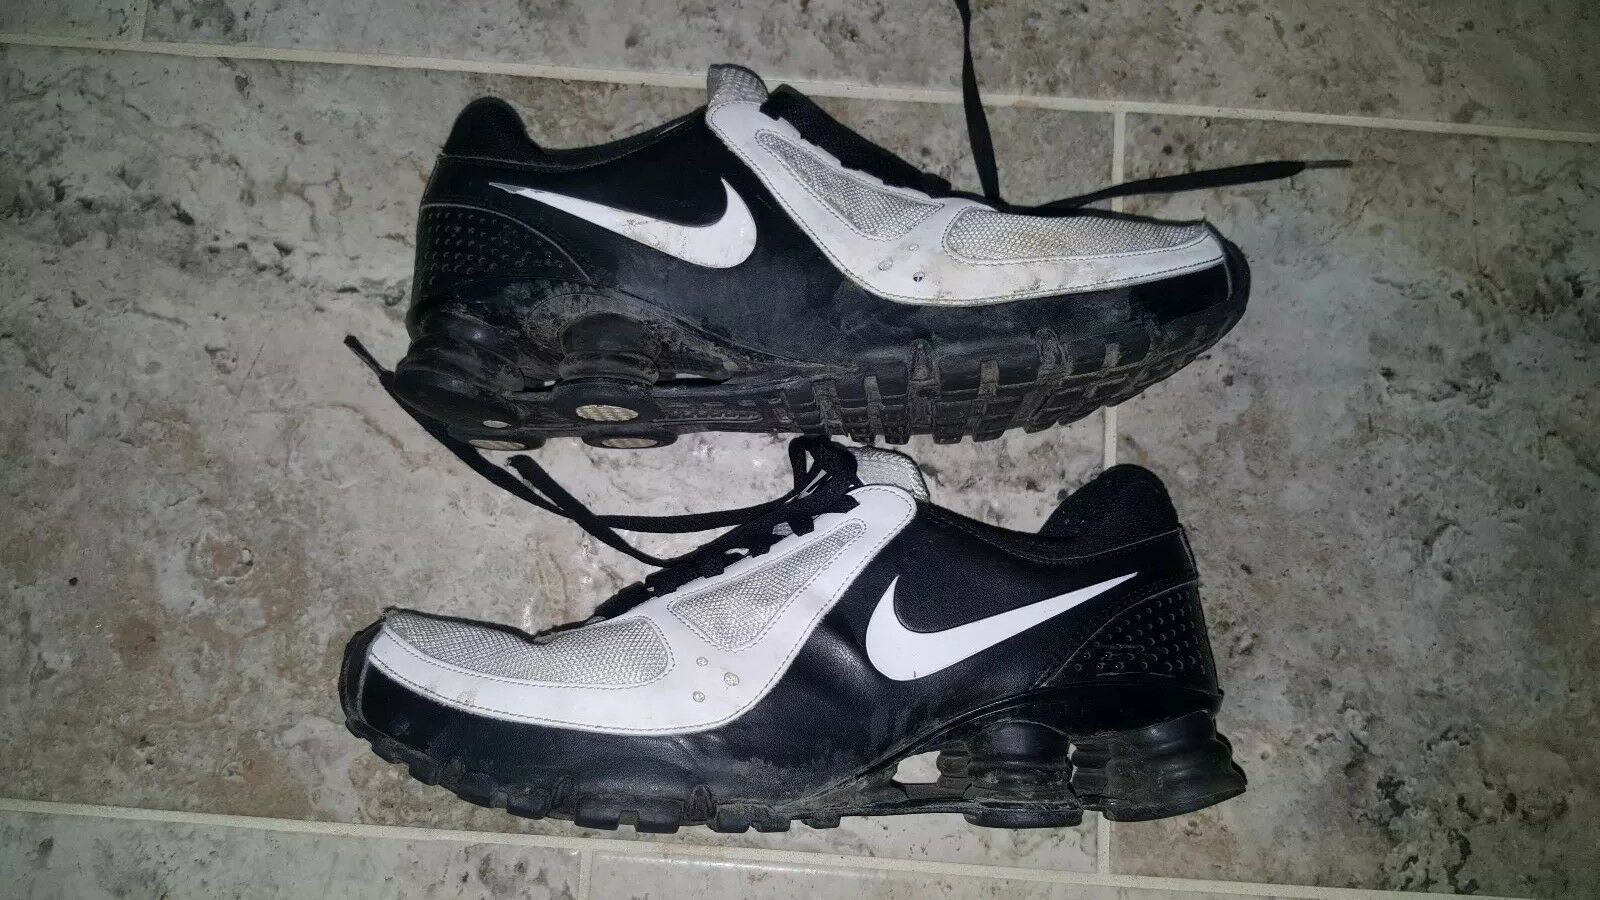 2009 Mens Nike Shox Turbo 10 shoes Mens Size US9.5 ONLY MODEL FOR SALE ON EBAY